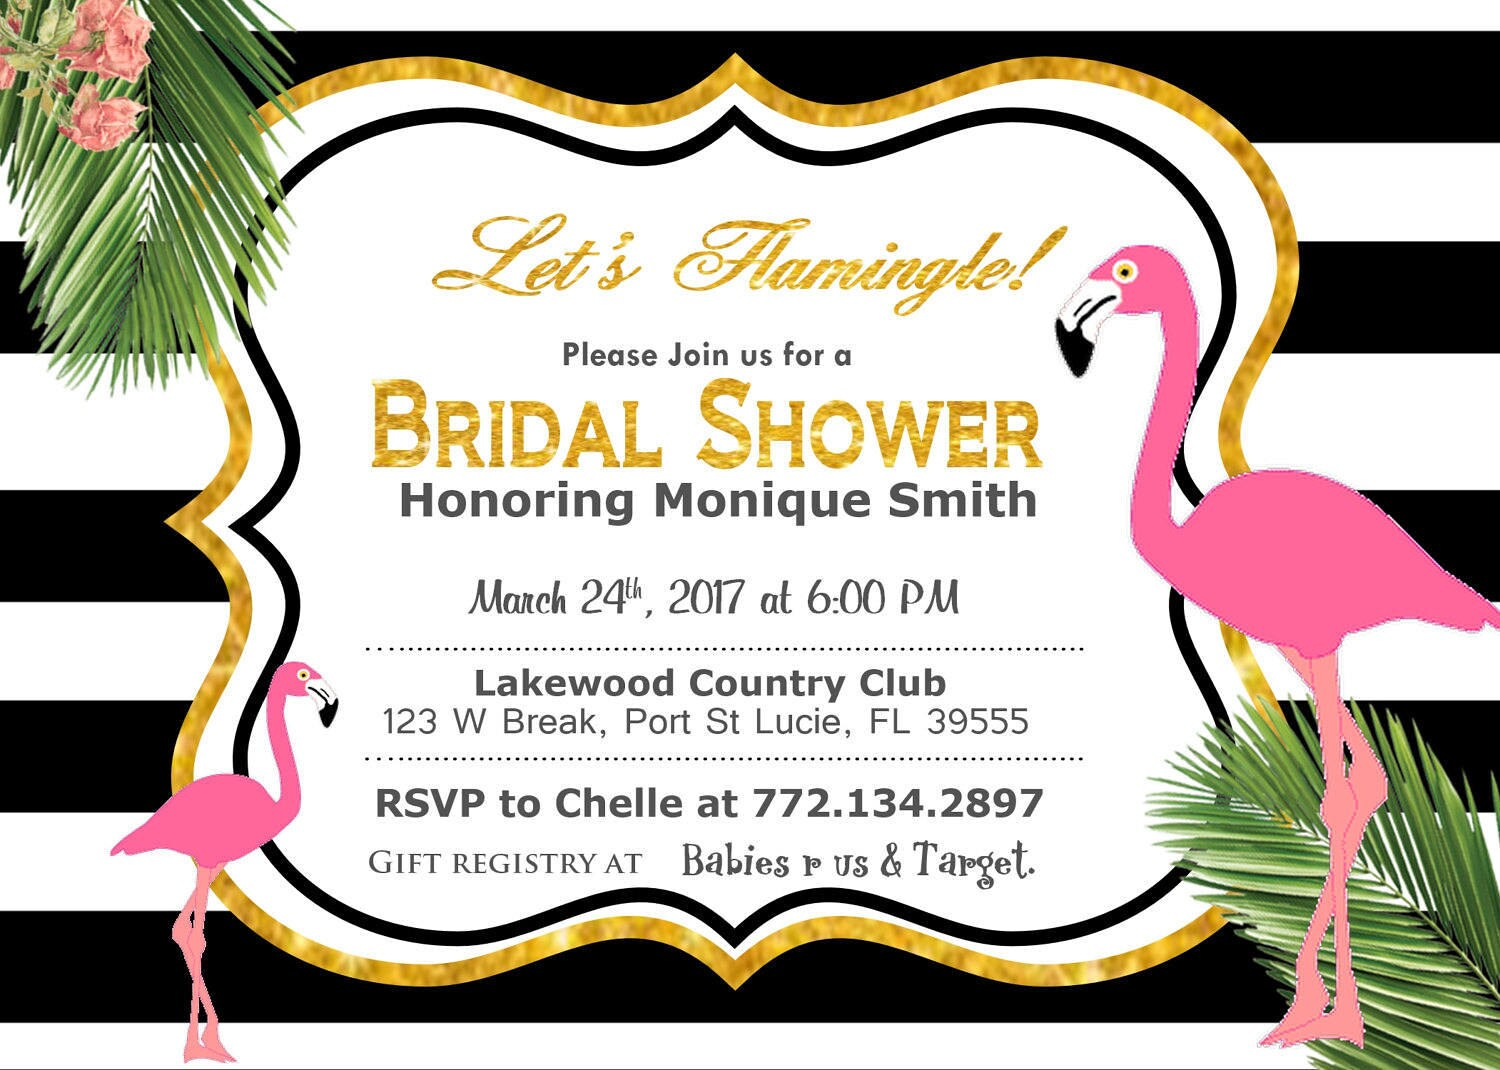 Lets flamingle bridal shower invitation baby shower invitation lets flamingle bridal shower invitation baby shower invitation flamingle black hot pink pink gold glitter raffle ticket flamingo filmwisefo